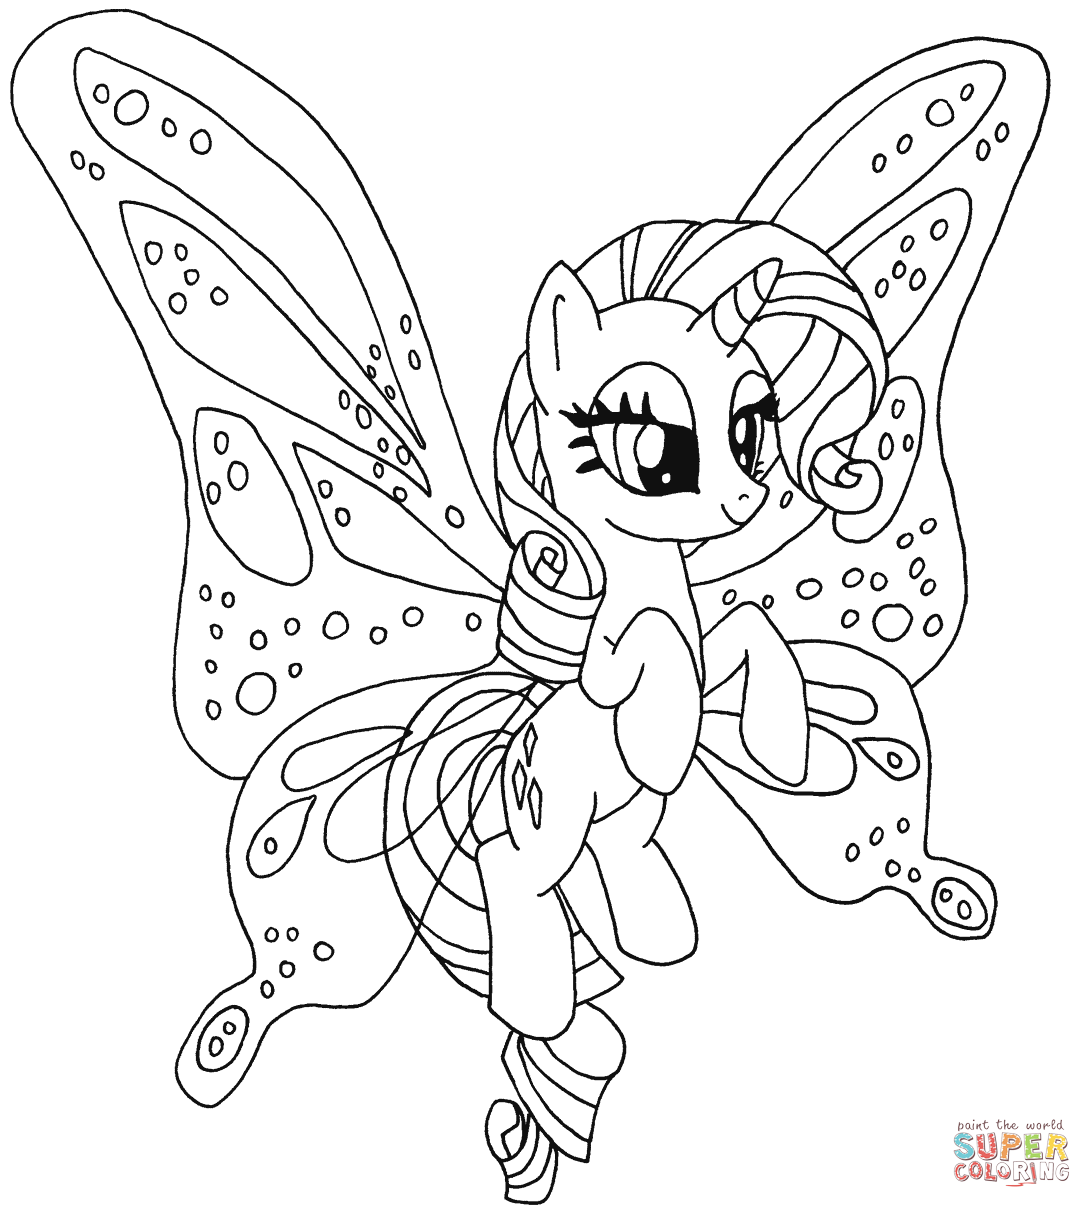 mlp coloring book games free printable my little pony coloring pages for kids games book coloring mlp